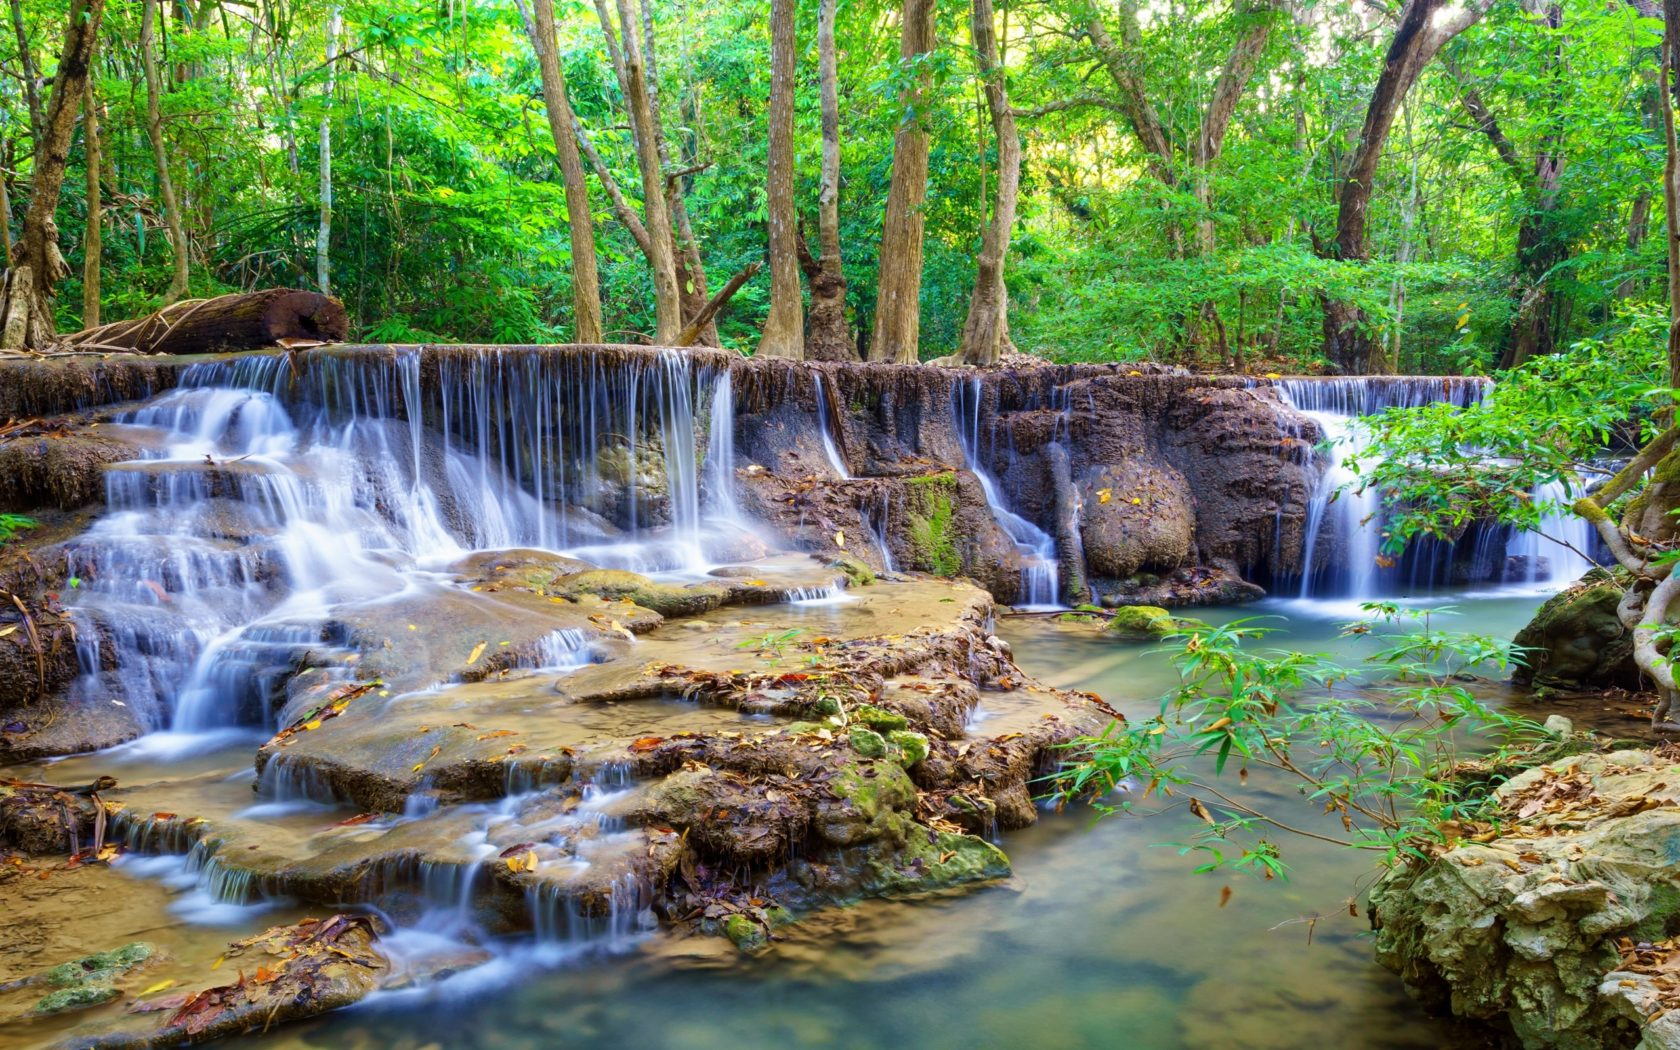 Angel Falls Hd Wallpaper Waterfalls Forests Stones Nature Wallpapers And Photos